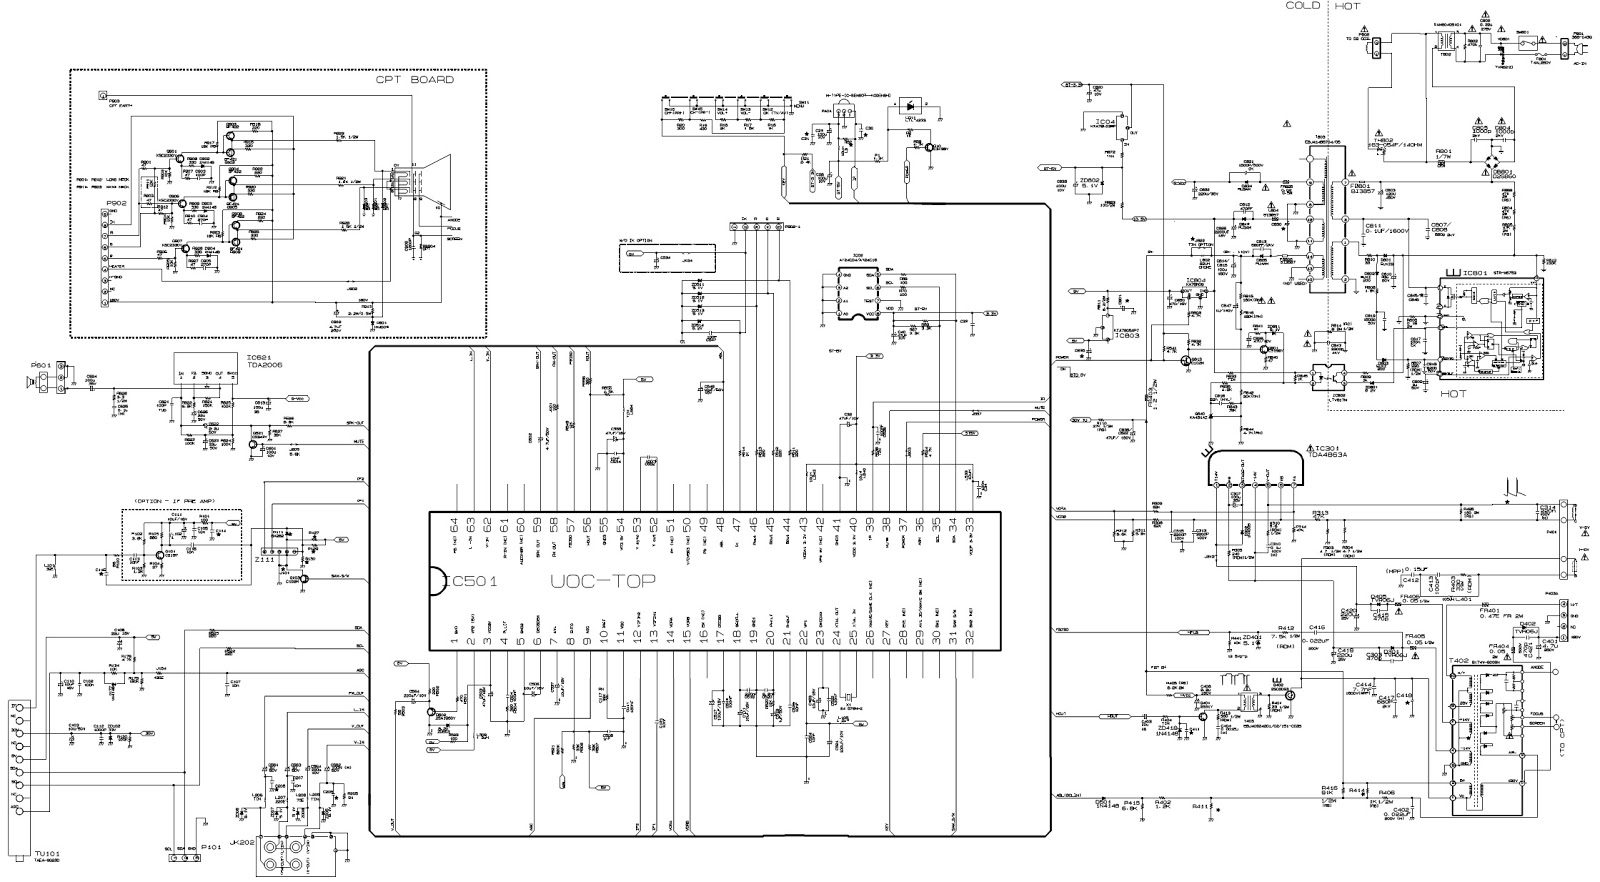 Lg21fj6  U2013 Colour Tv  U2013 Circuit Diagram  U2013 Main Components